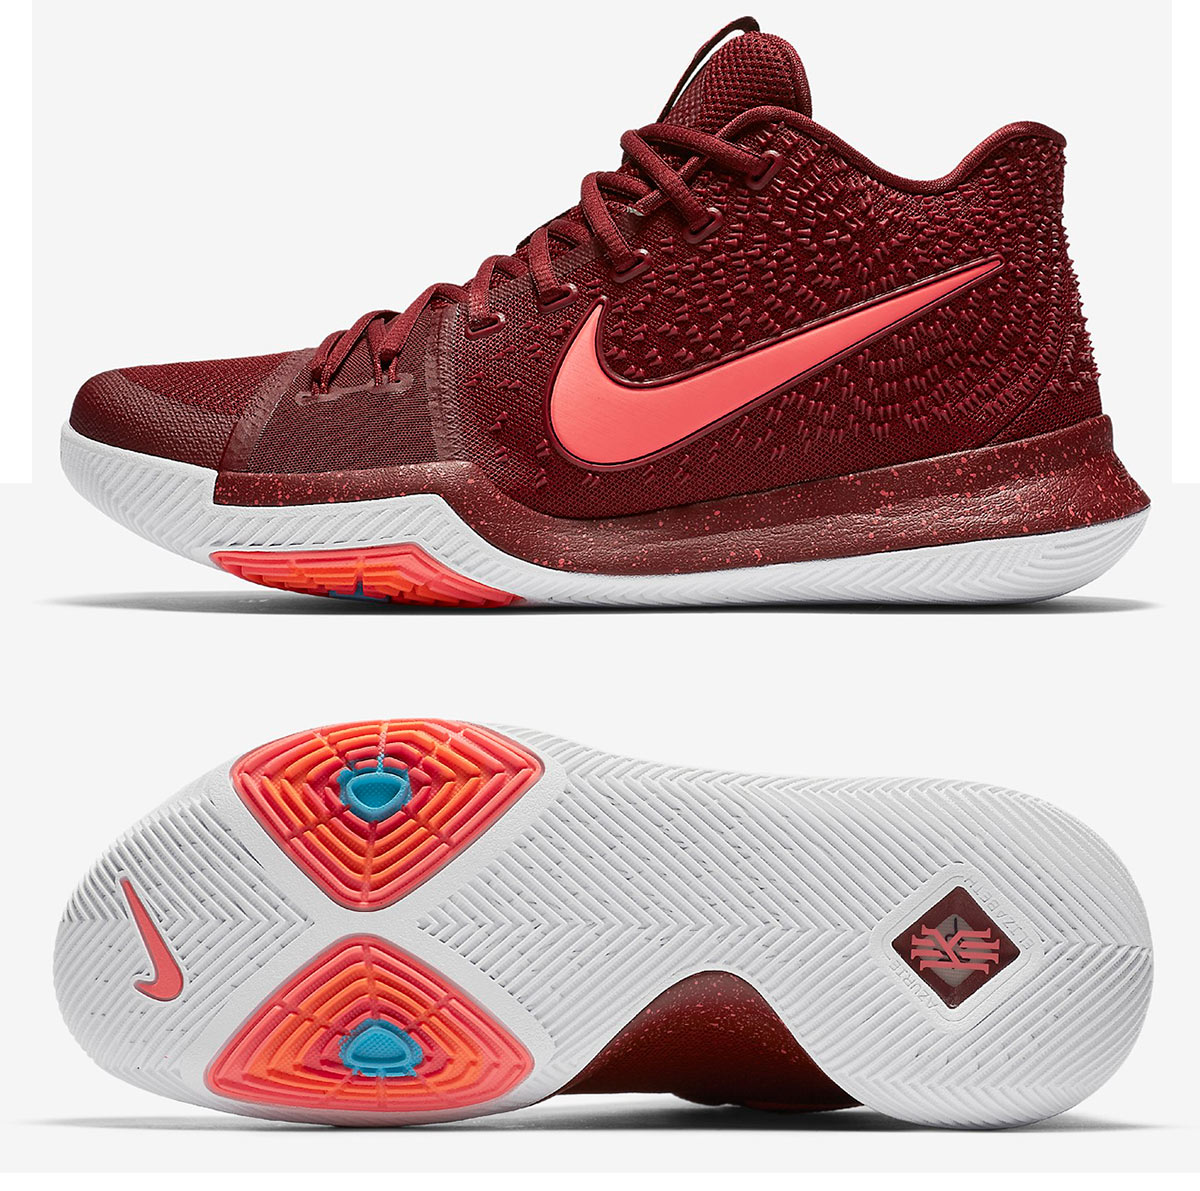 kyrie irving shoes and soles